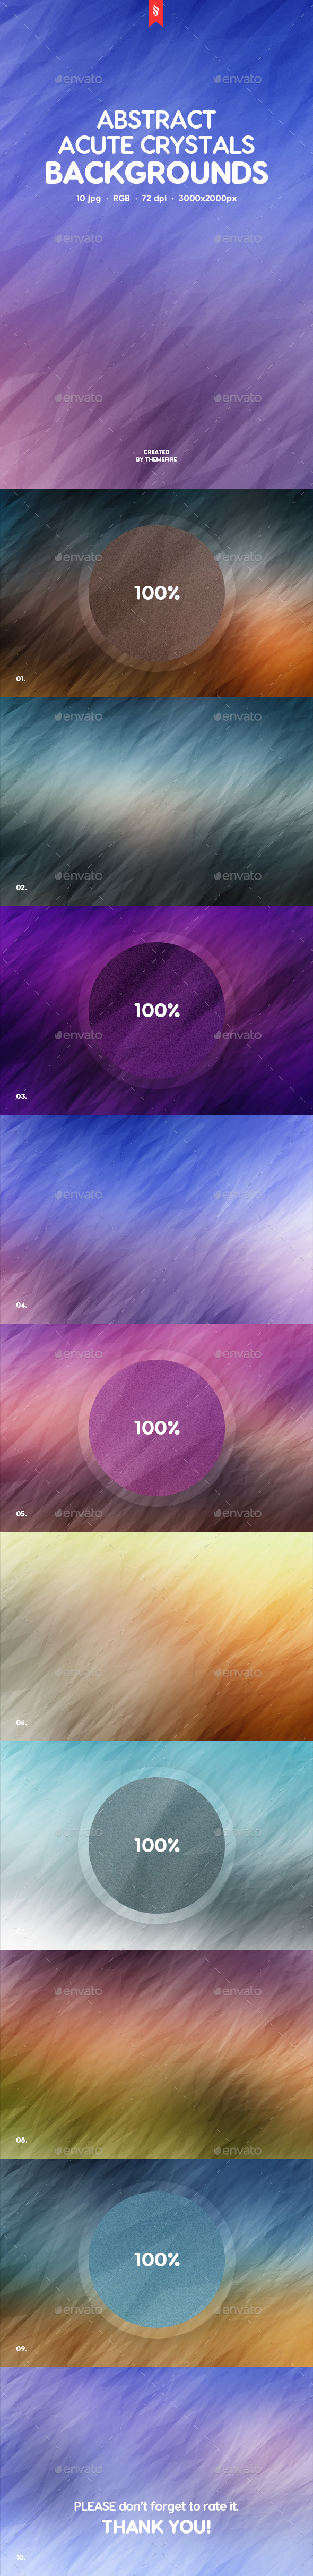 Acute Crystals Backgrounds